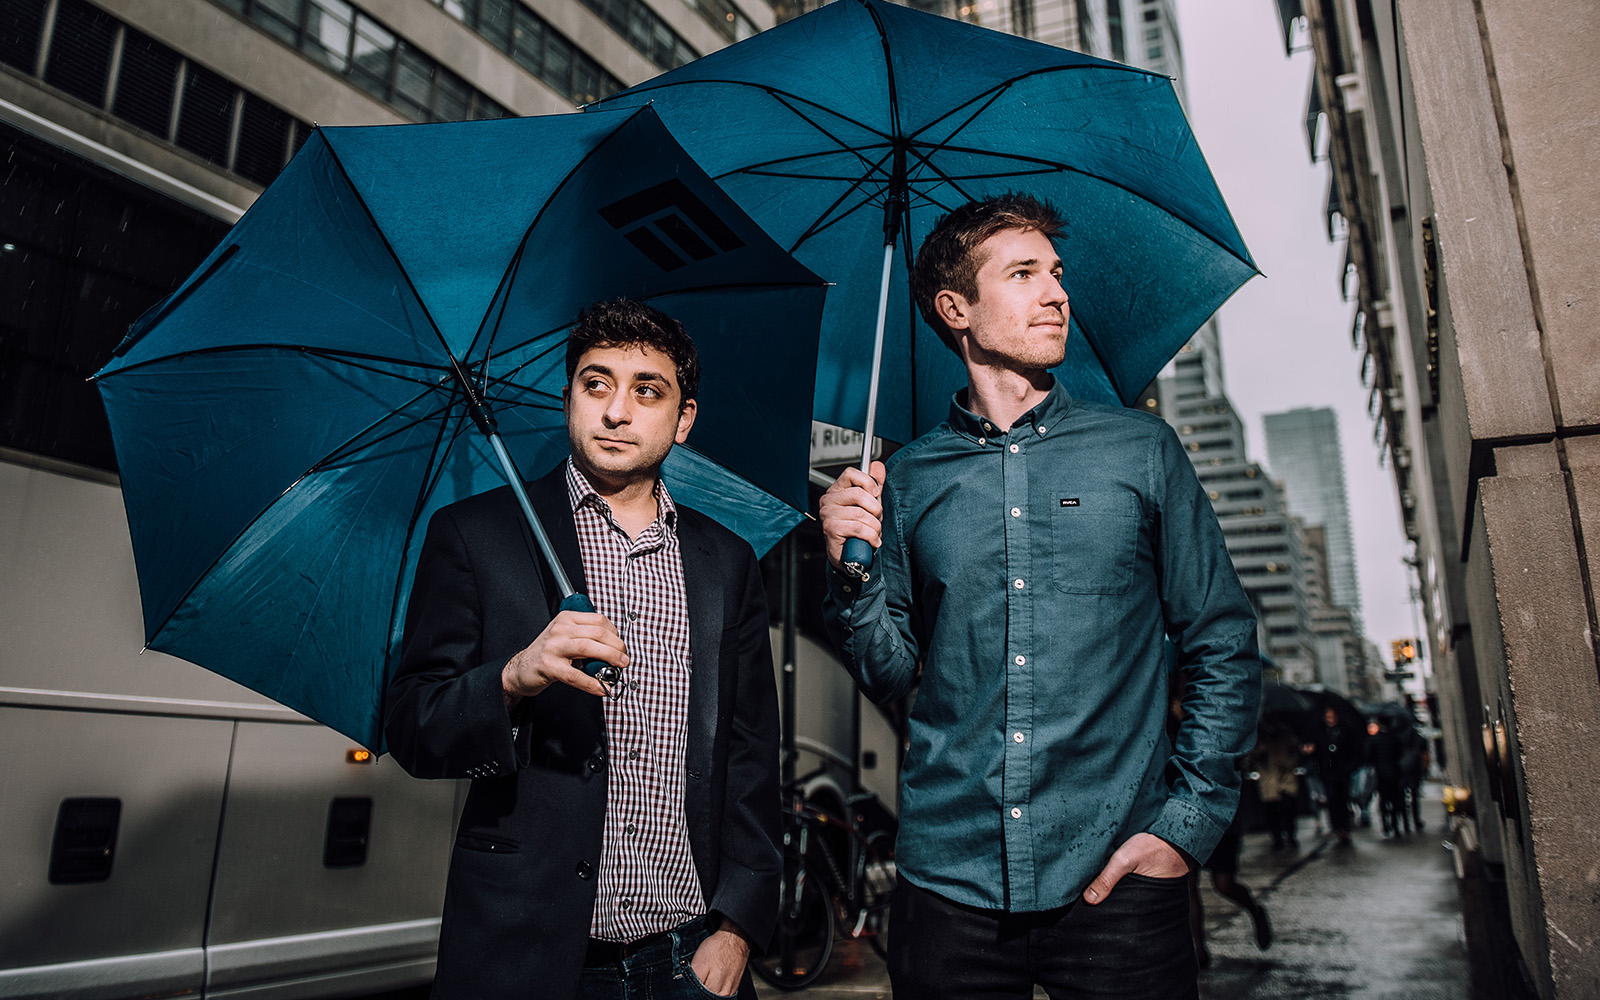 Nadav Ullman '12 (BUS), the CEO, and Thomas Bachant '13 (ENG), co-founder and CTO of Dashride, outside their office on 5th Avenue in New York City. (Nathan Oldham/UConn School of Business)